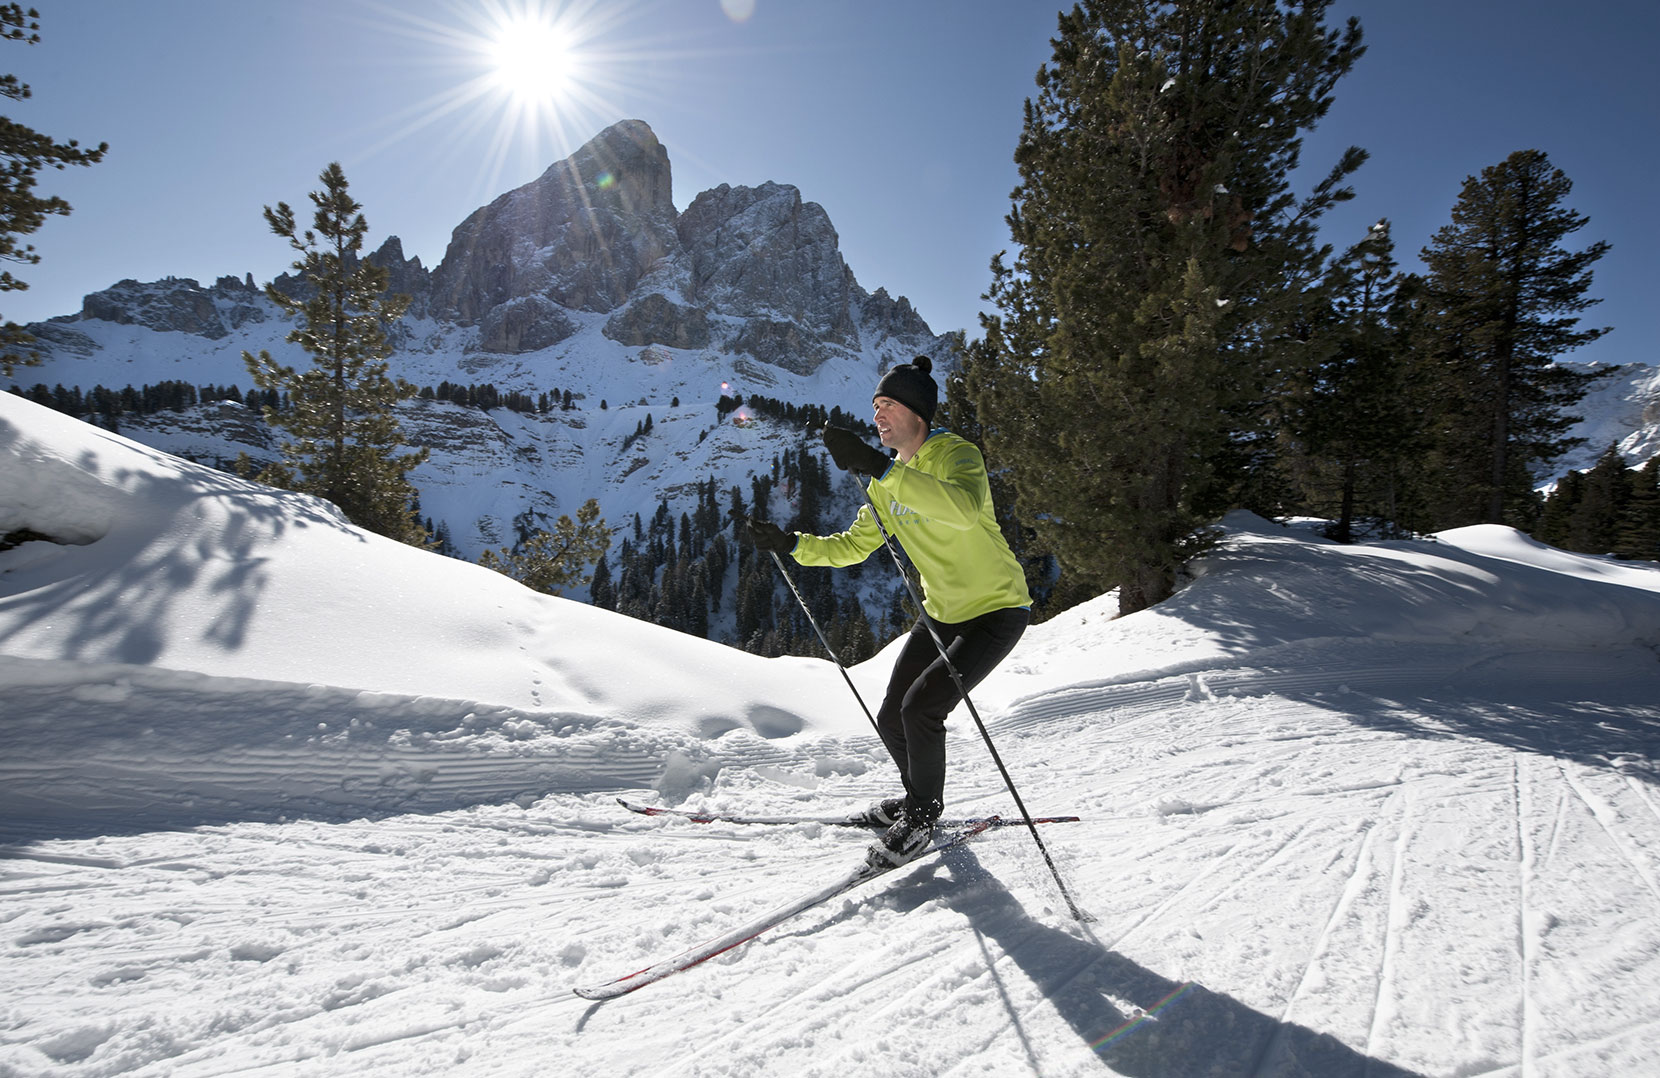 Enjoy cross-country skiing